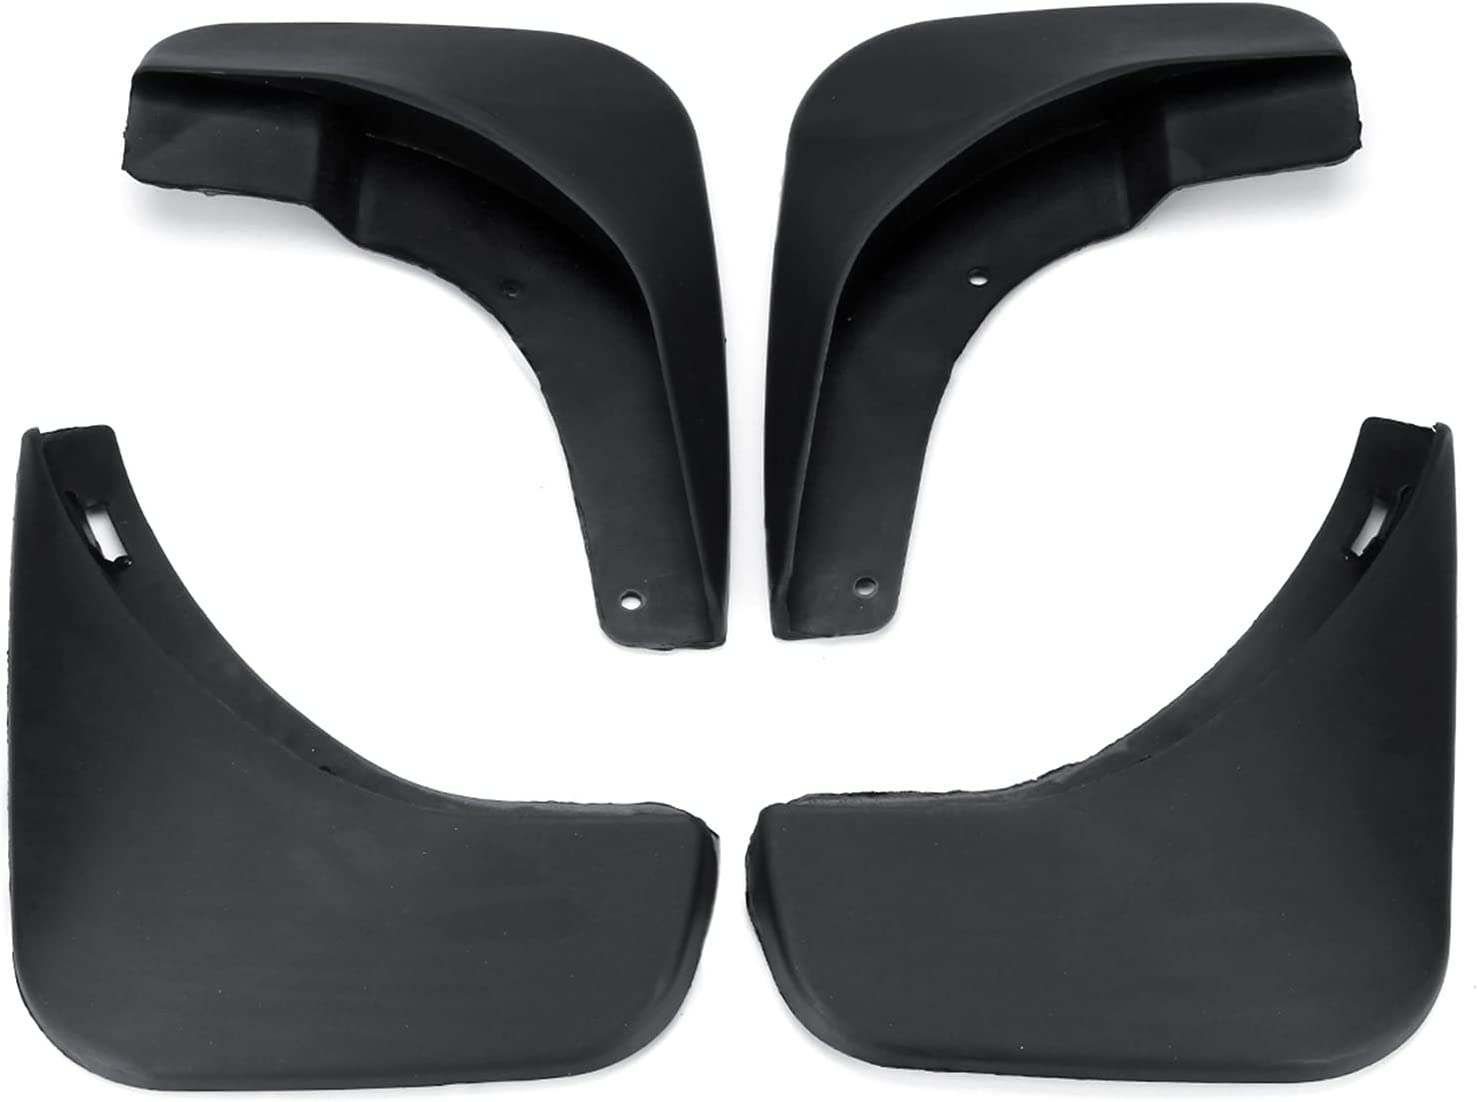 BNMY car Car Mud Flaps Limited time trial price for Skoda Octavia A5 High material Sedan Saloon 2005- 2